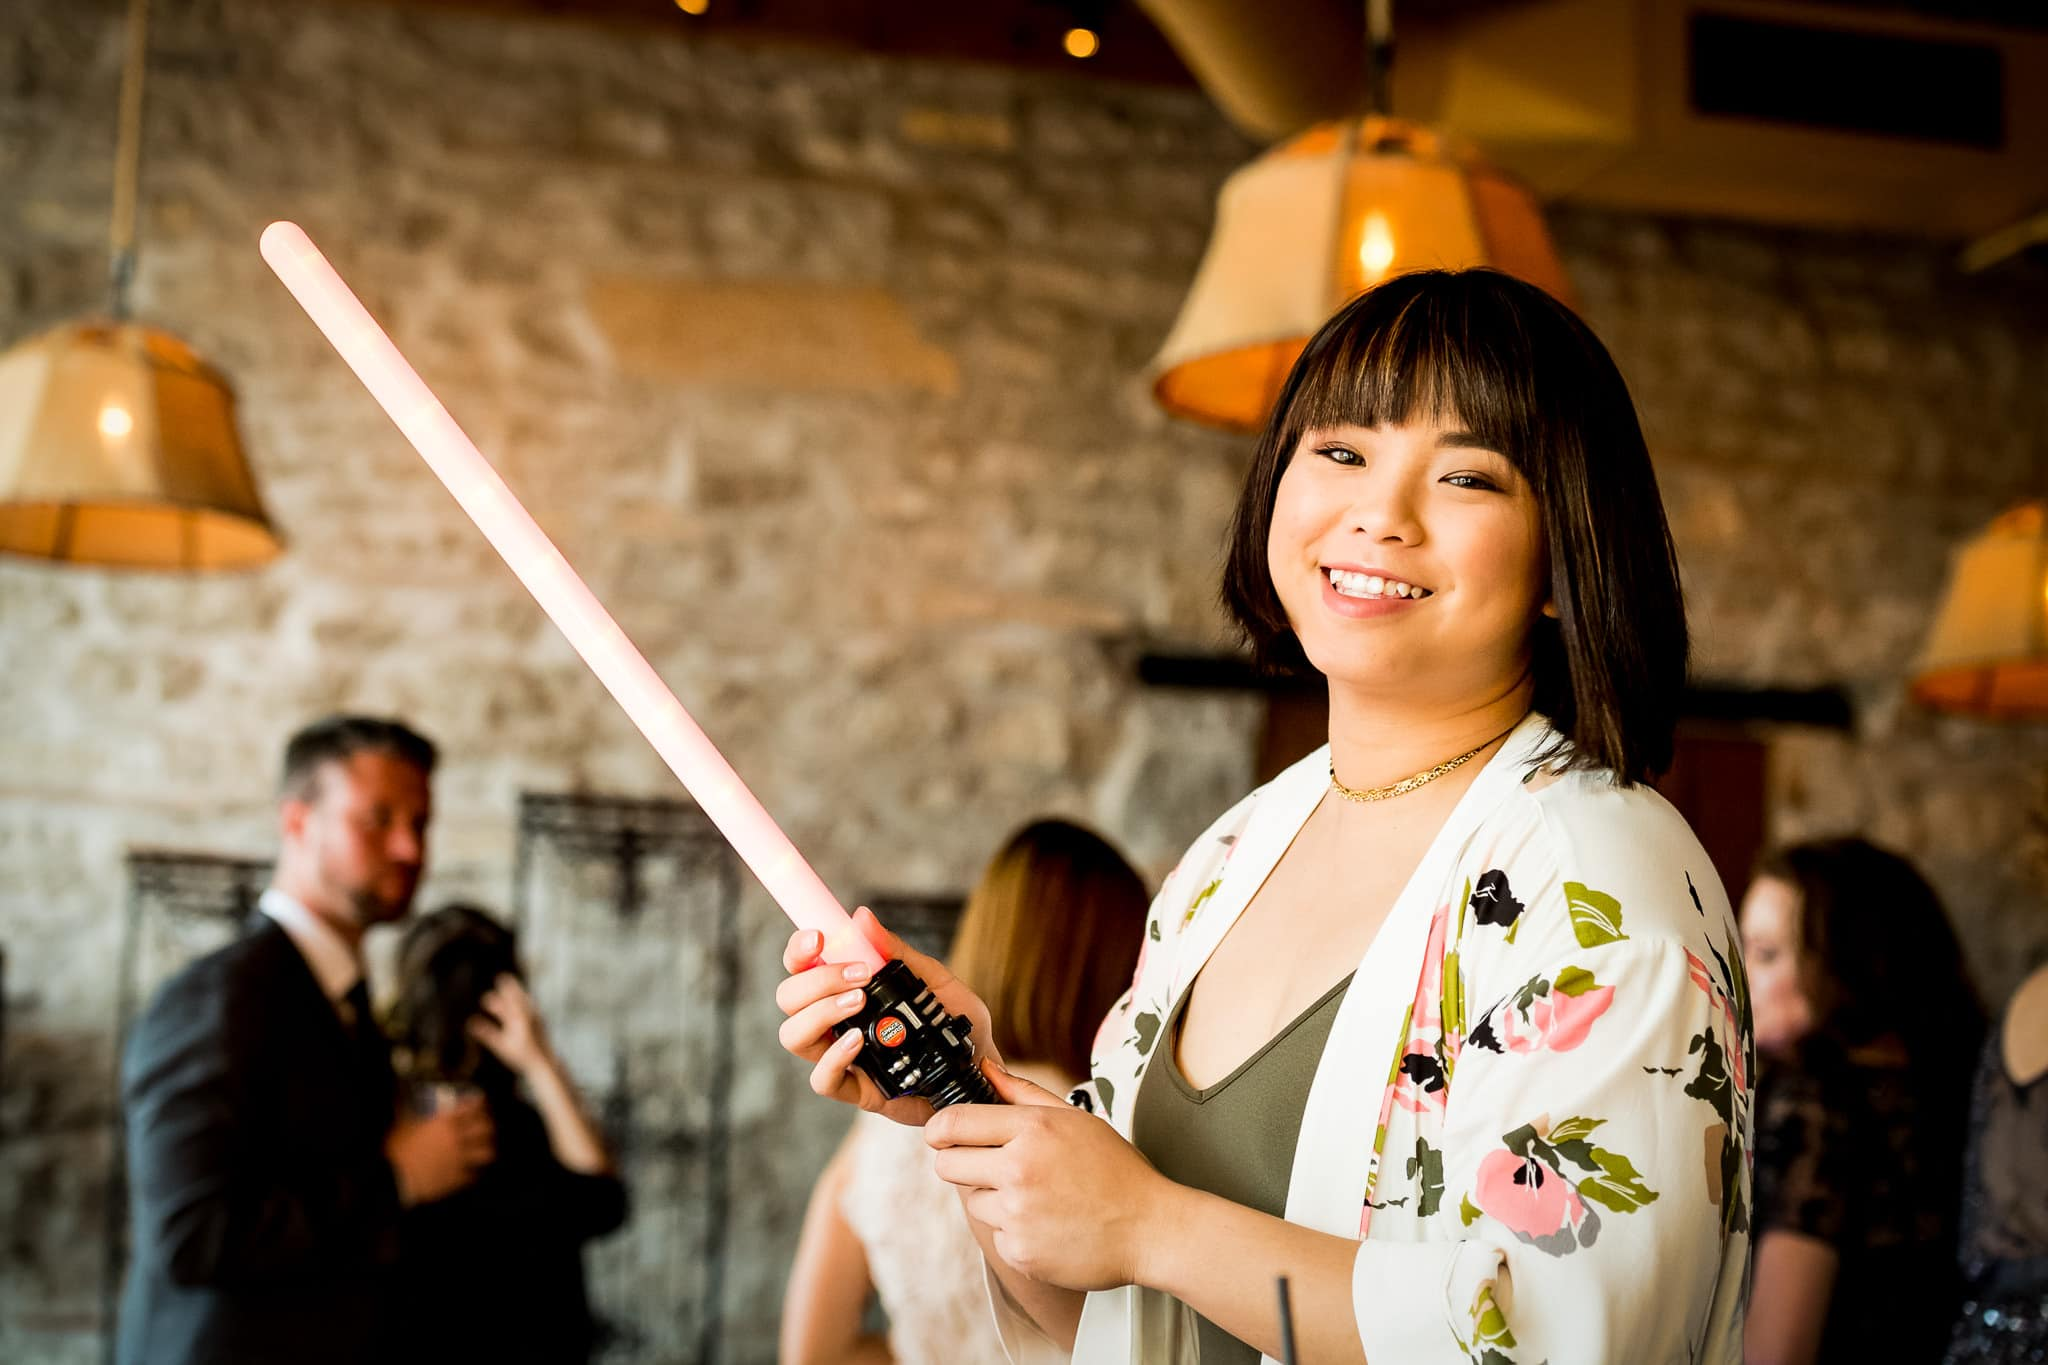 Star Wars Light Saber battle during the wedding reception in the River Room at Aster Cafe 7